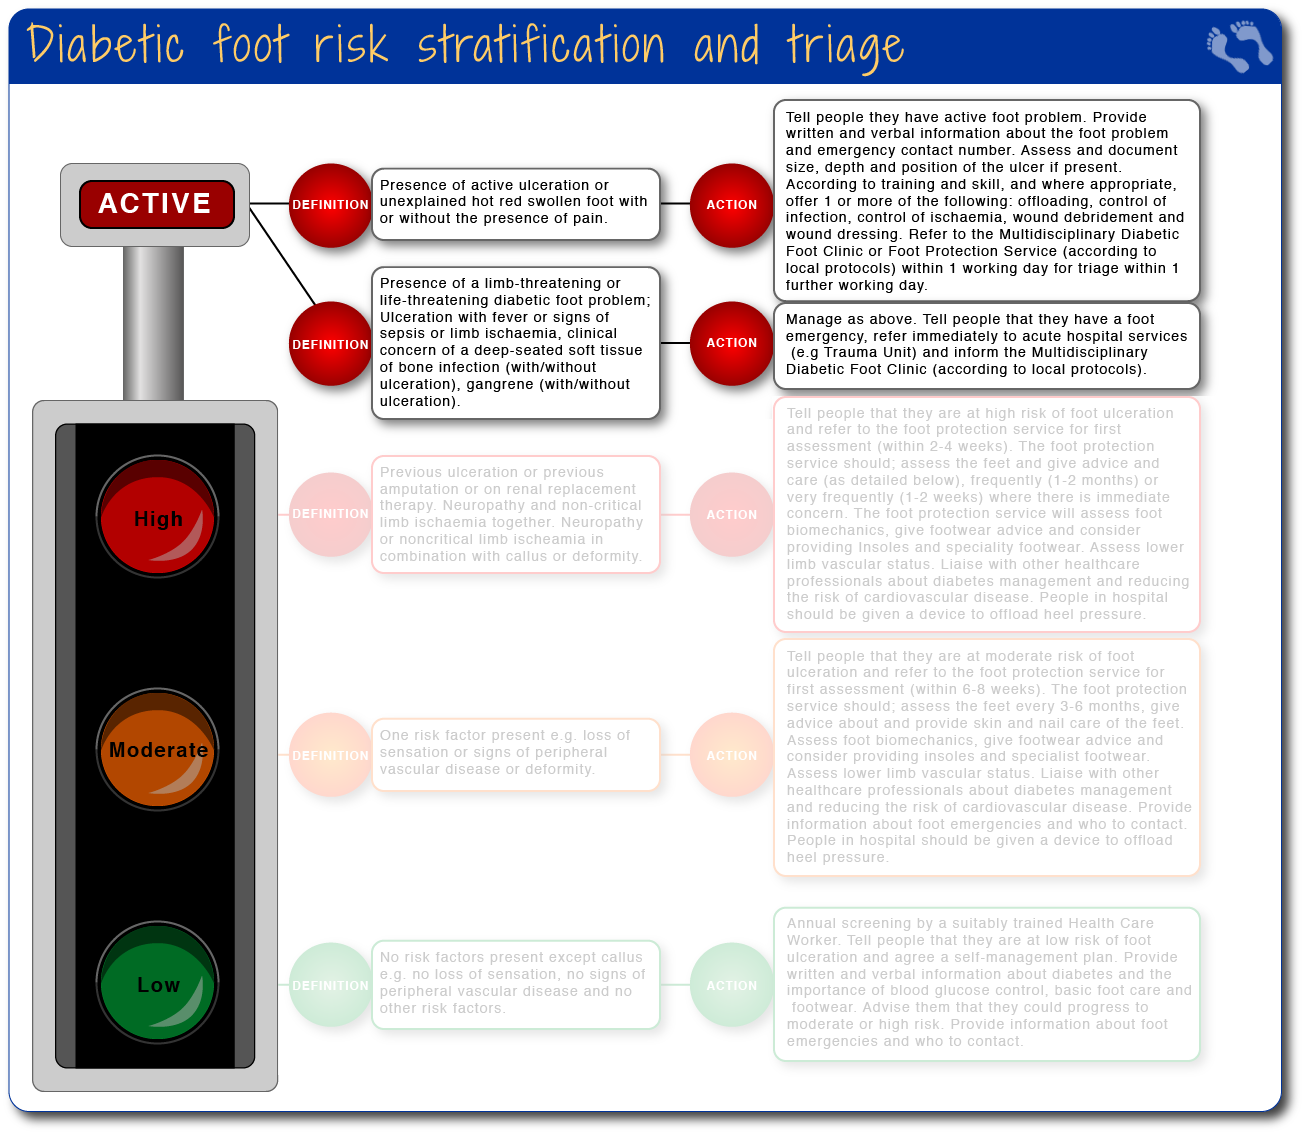 Diabetic foot risk stratification and triage - active risk